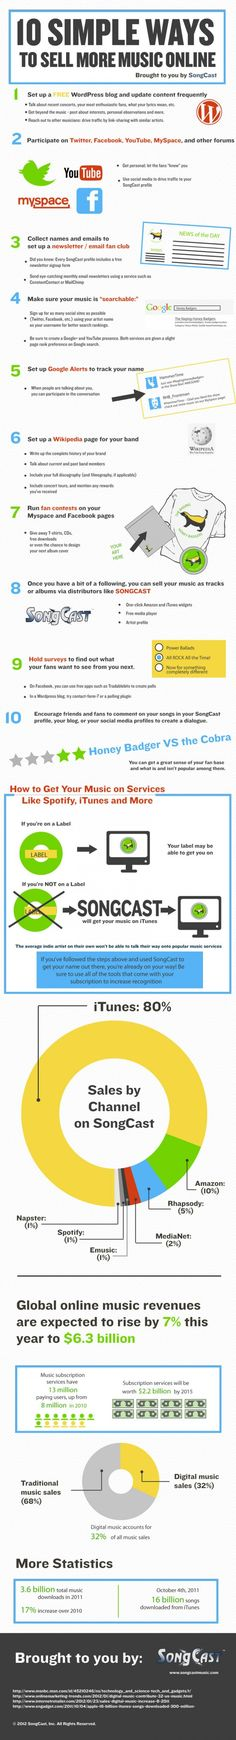 This infographic is a representation of proven music promotion techniques that help musicians and bands to sell music online  cc @Music Earth Rise